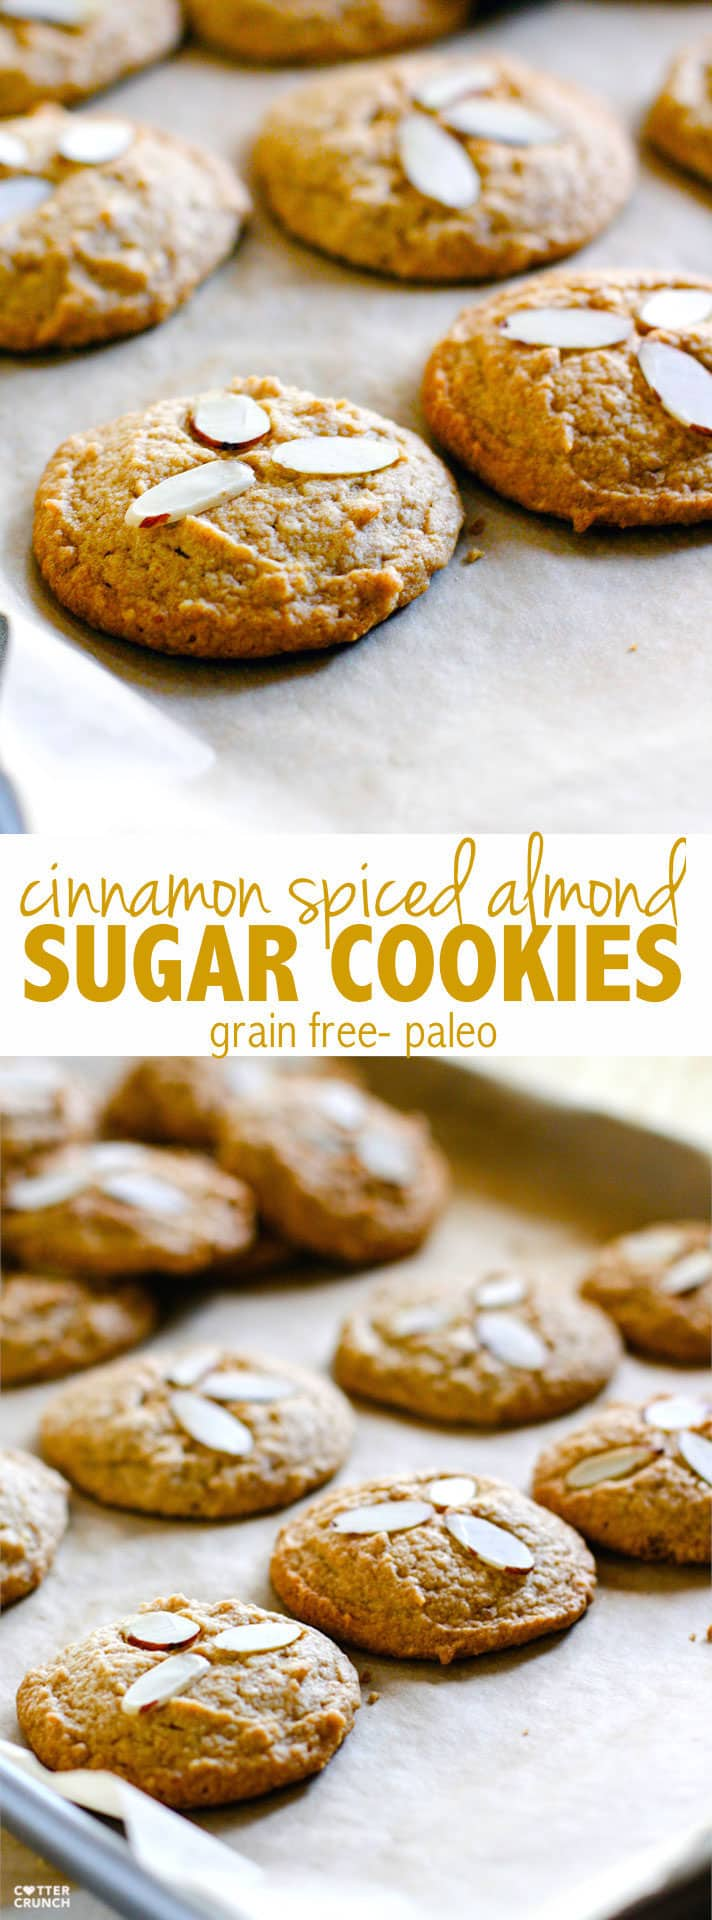 Grain Free and Paleo friendly cinnamon spiced almond-sugar-cookies! Made with healthy fats, coconut sugar, cinnamon, almonds, and taste like the real deal! Perfect FALL baking made healthy! #cottercrunch